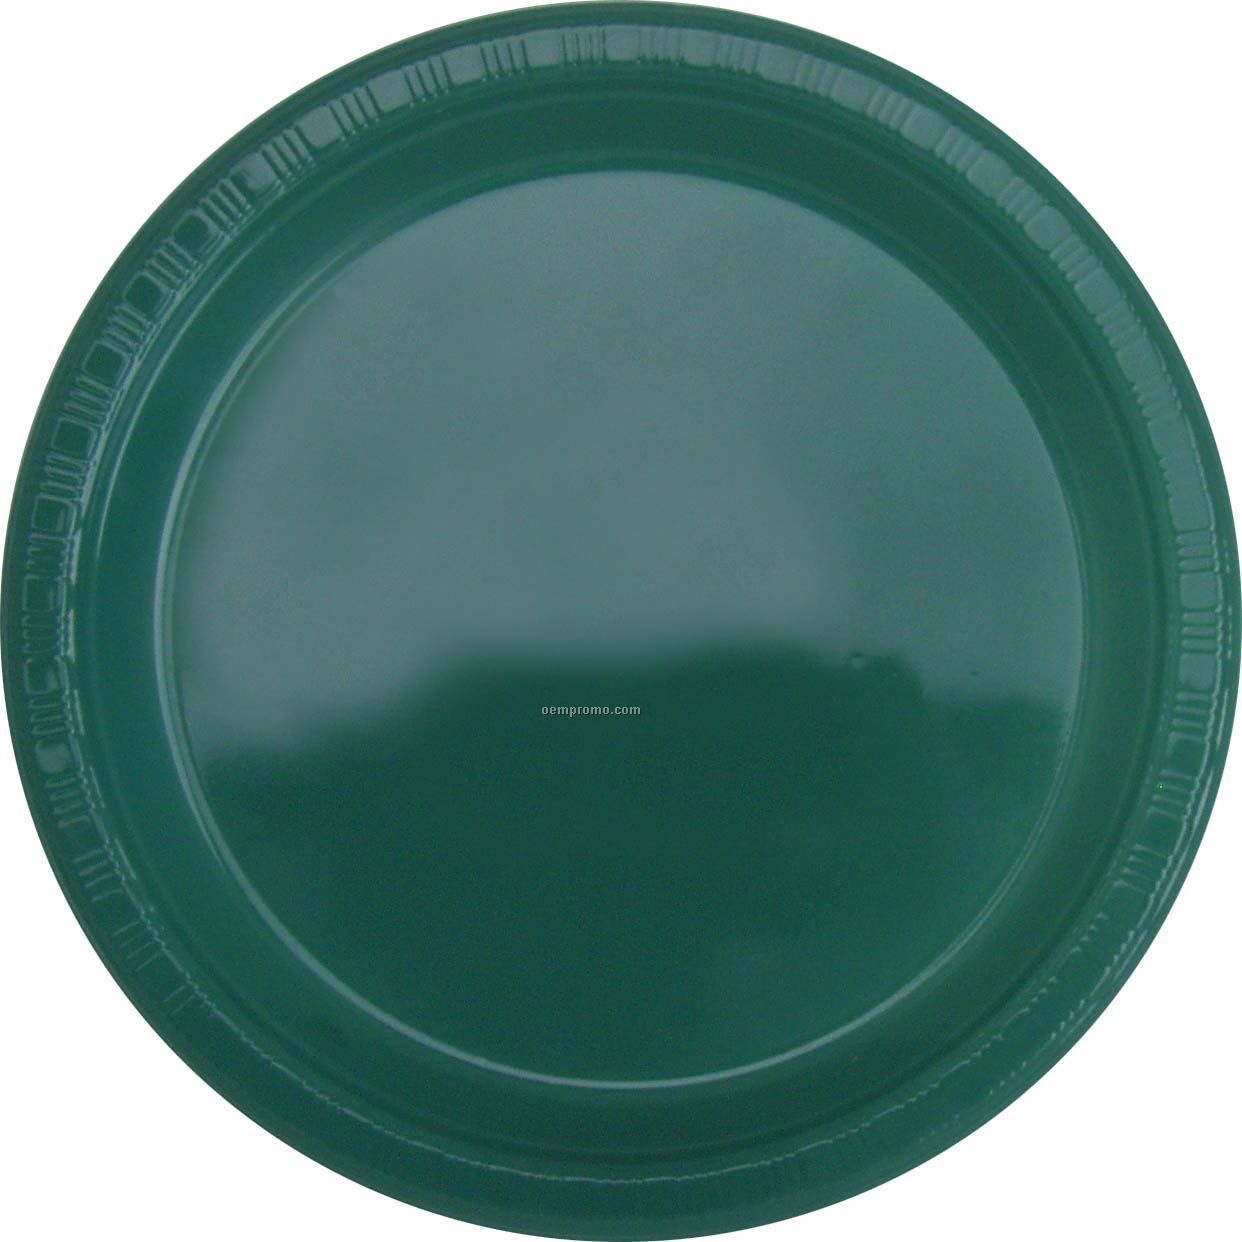 "Colorware 7"" Hunter Green Plastic Plate"